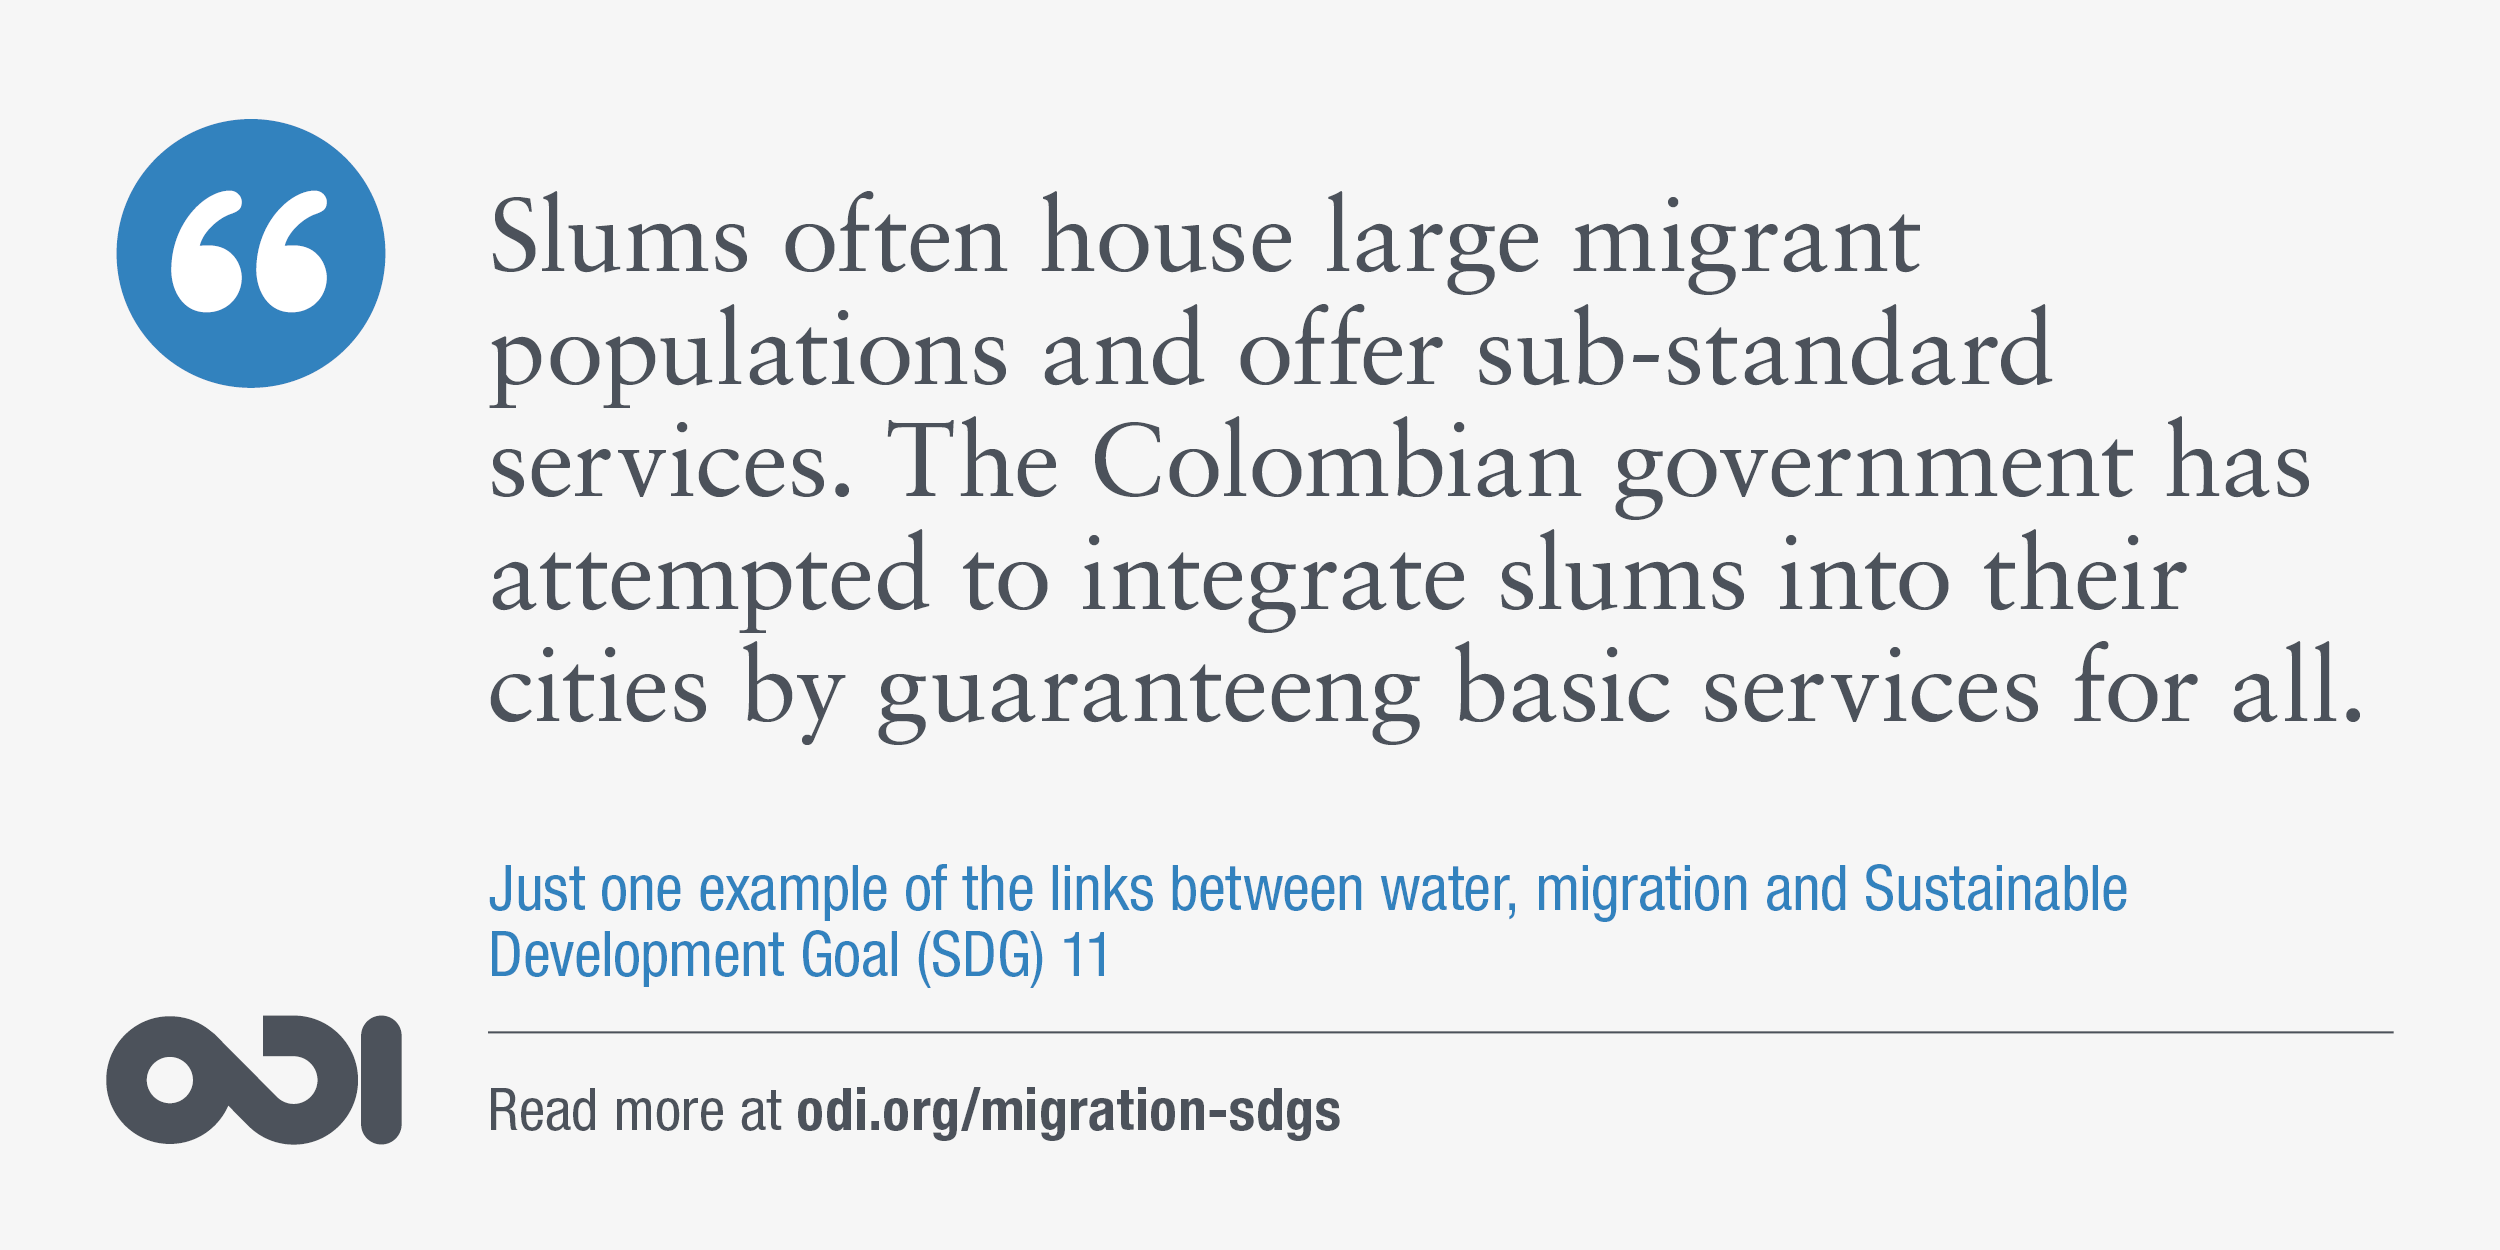 The links between water, migration and SDG 11.